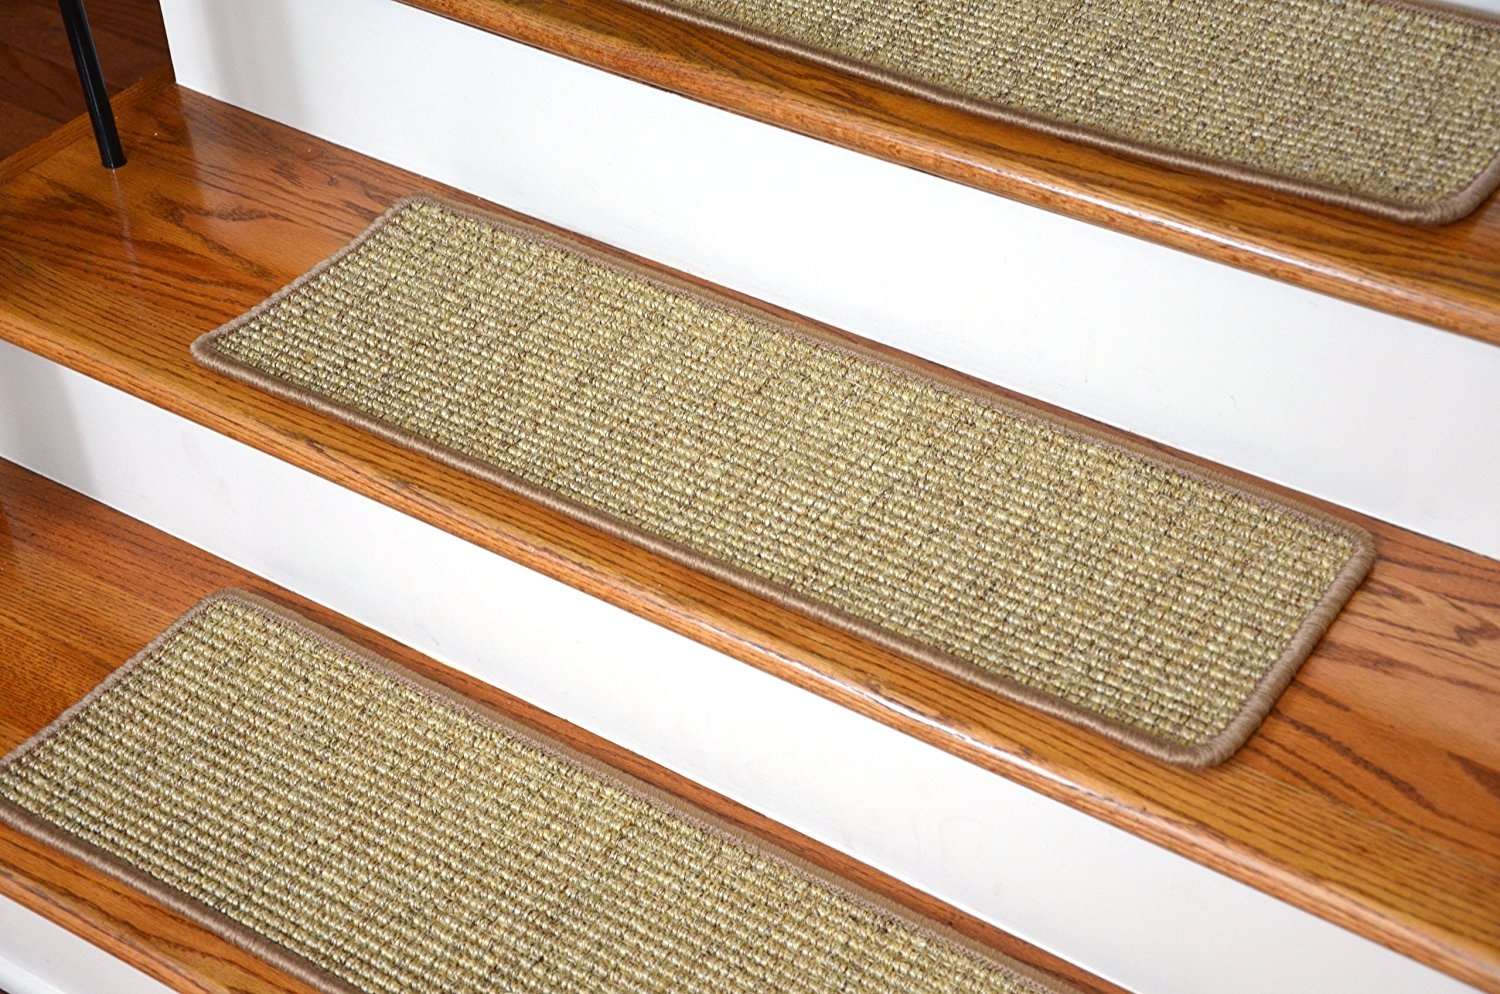 Amazon Dean Attachable Non Skid Sisal Carpet Stair Treads For Non Slip Stair Treads Carpets (Image 3 of 15)